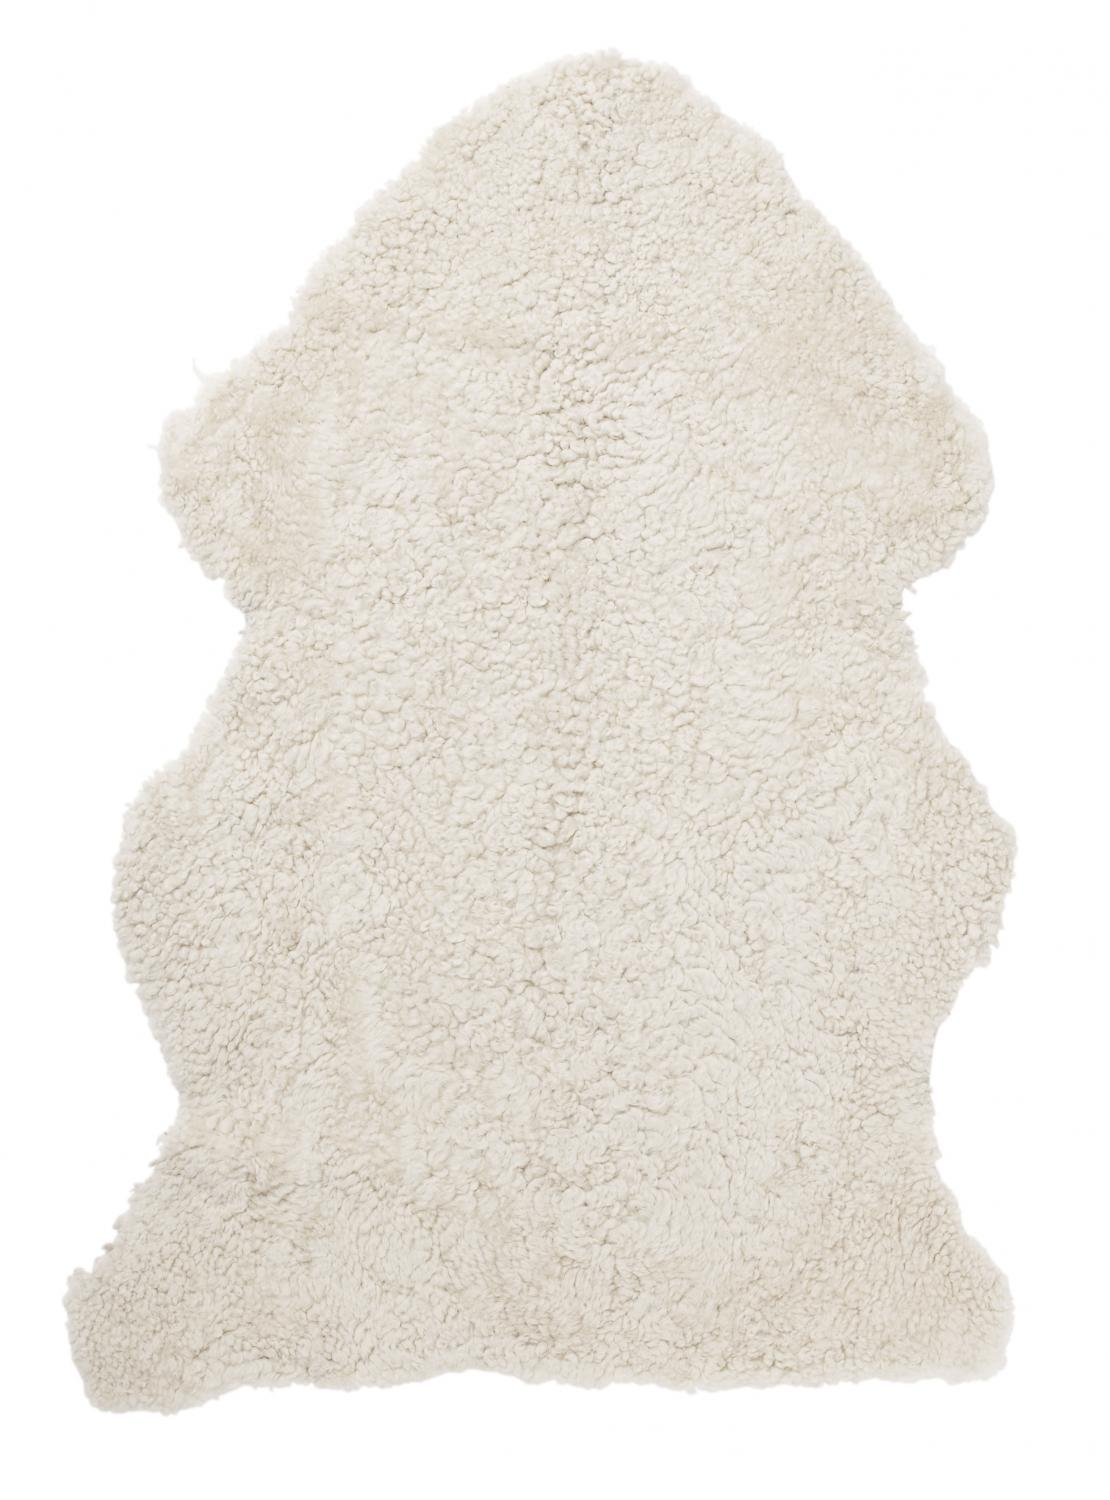 Curly Sheepskin - Beige